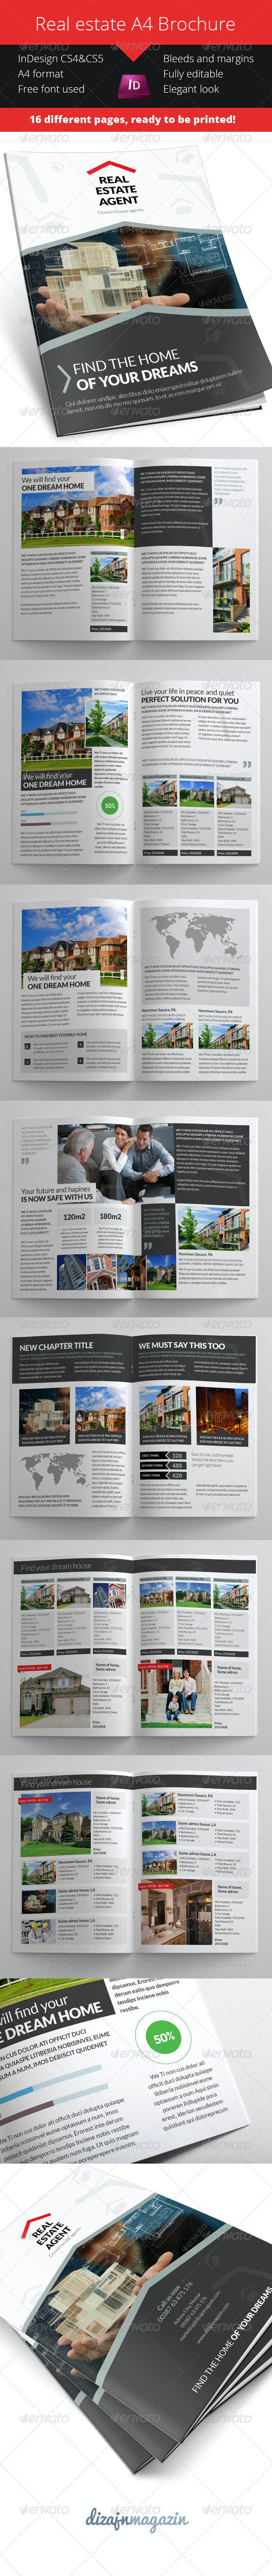 Real Estate Brochure - Product Catalog - Corporate Brochures